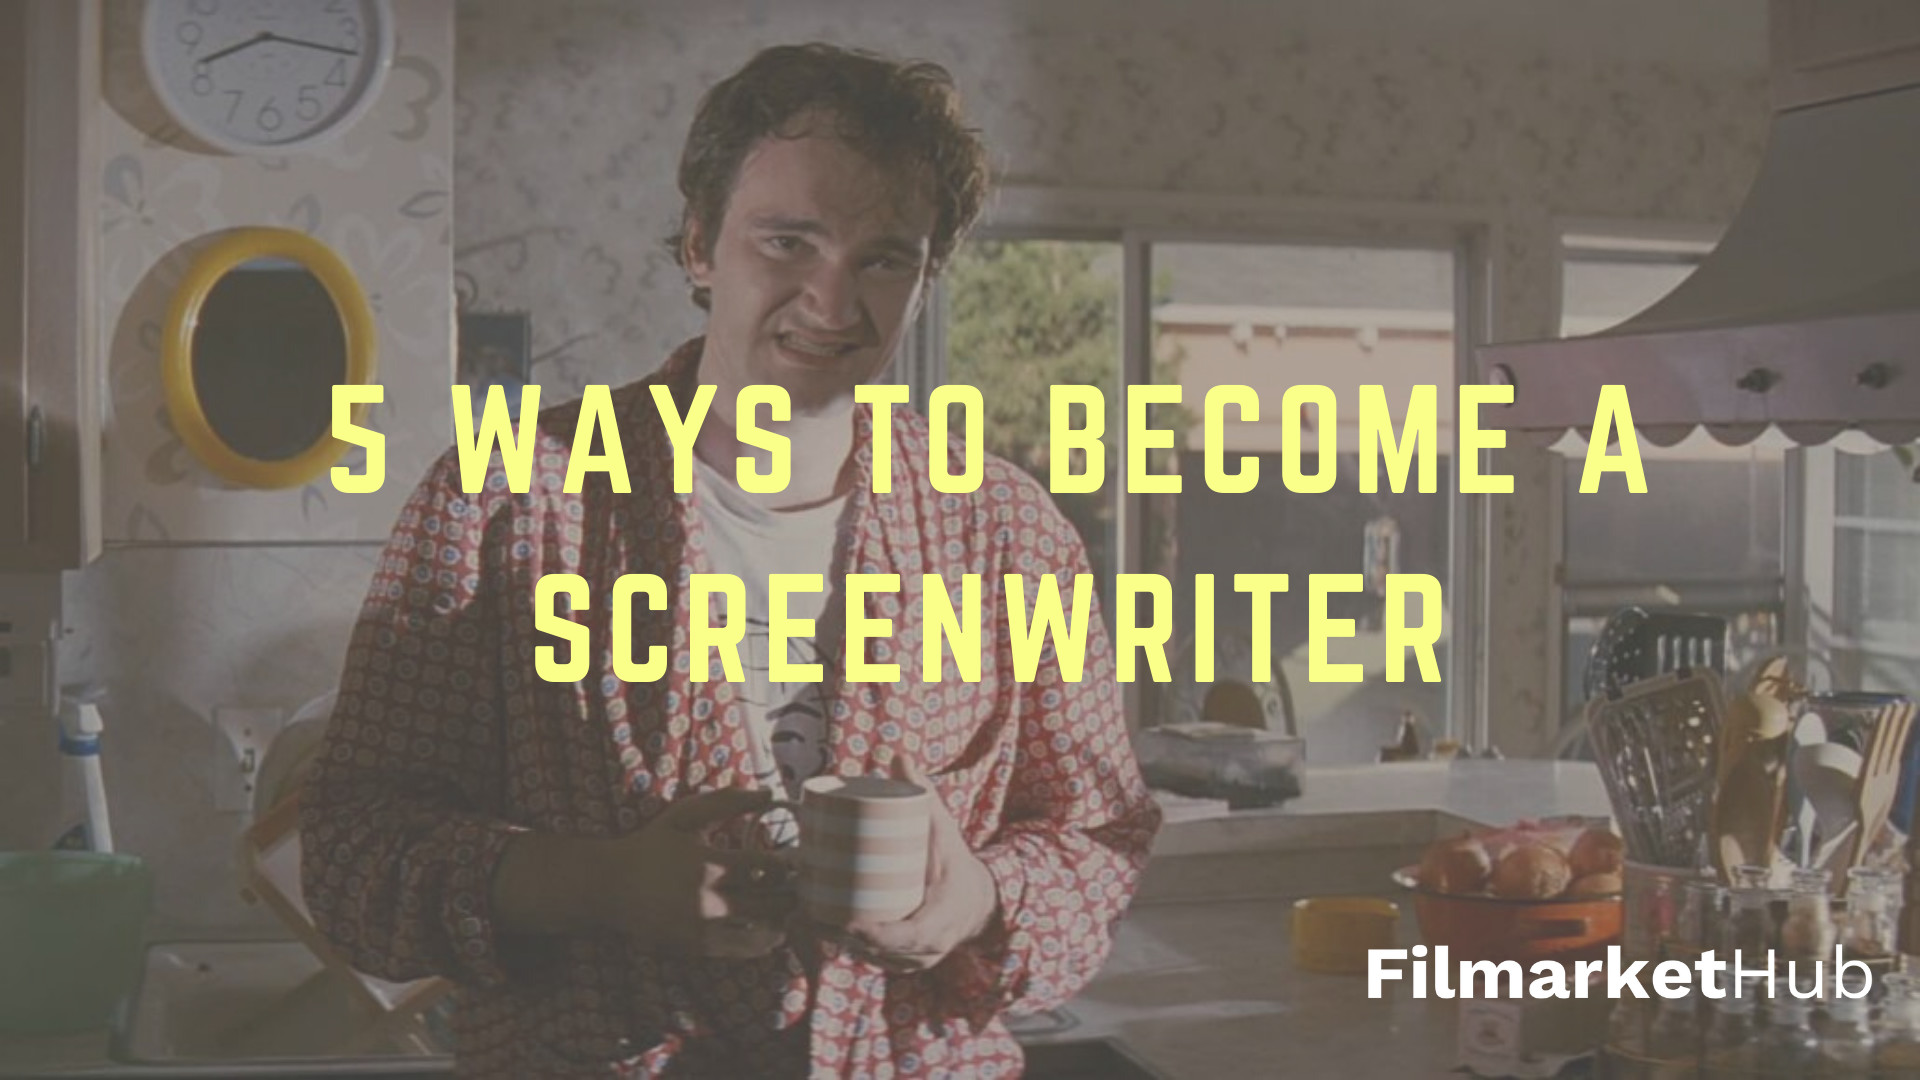 12 WAYS TO BECOME A SCREENWRITER. Background analysis of 12 popular